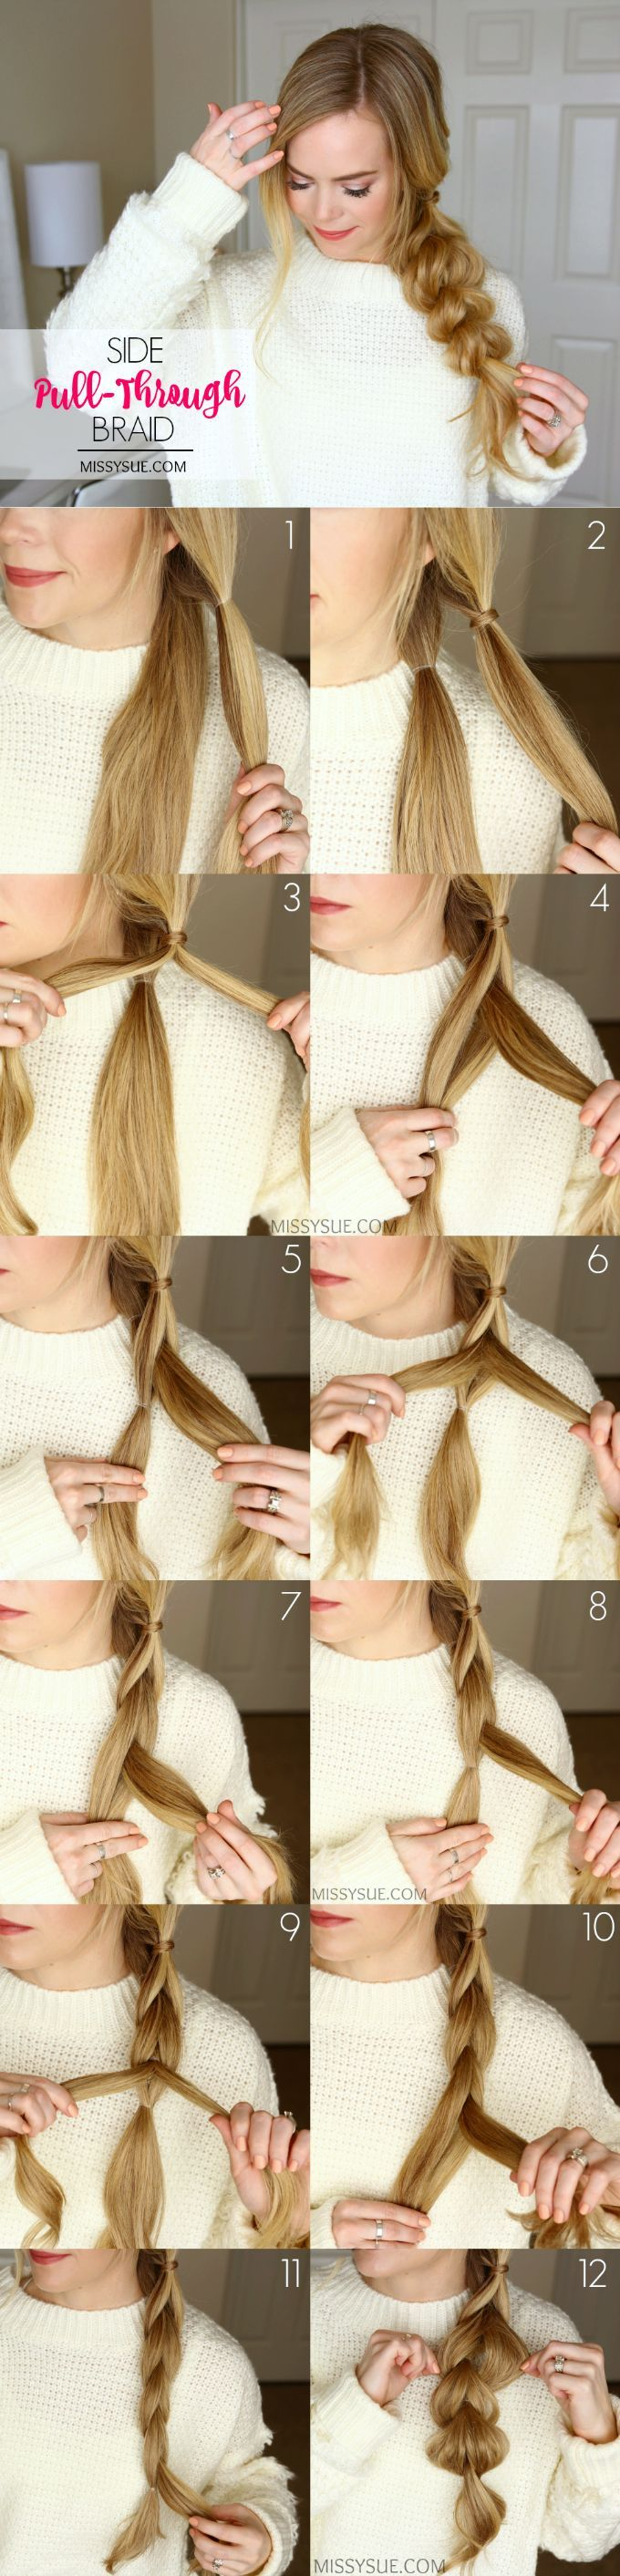 easy prom hairstyles for long hair you can diy at home